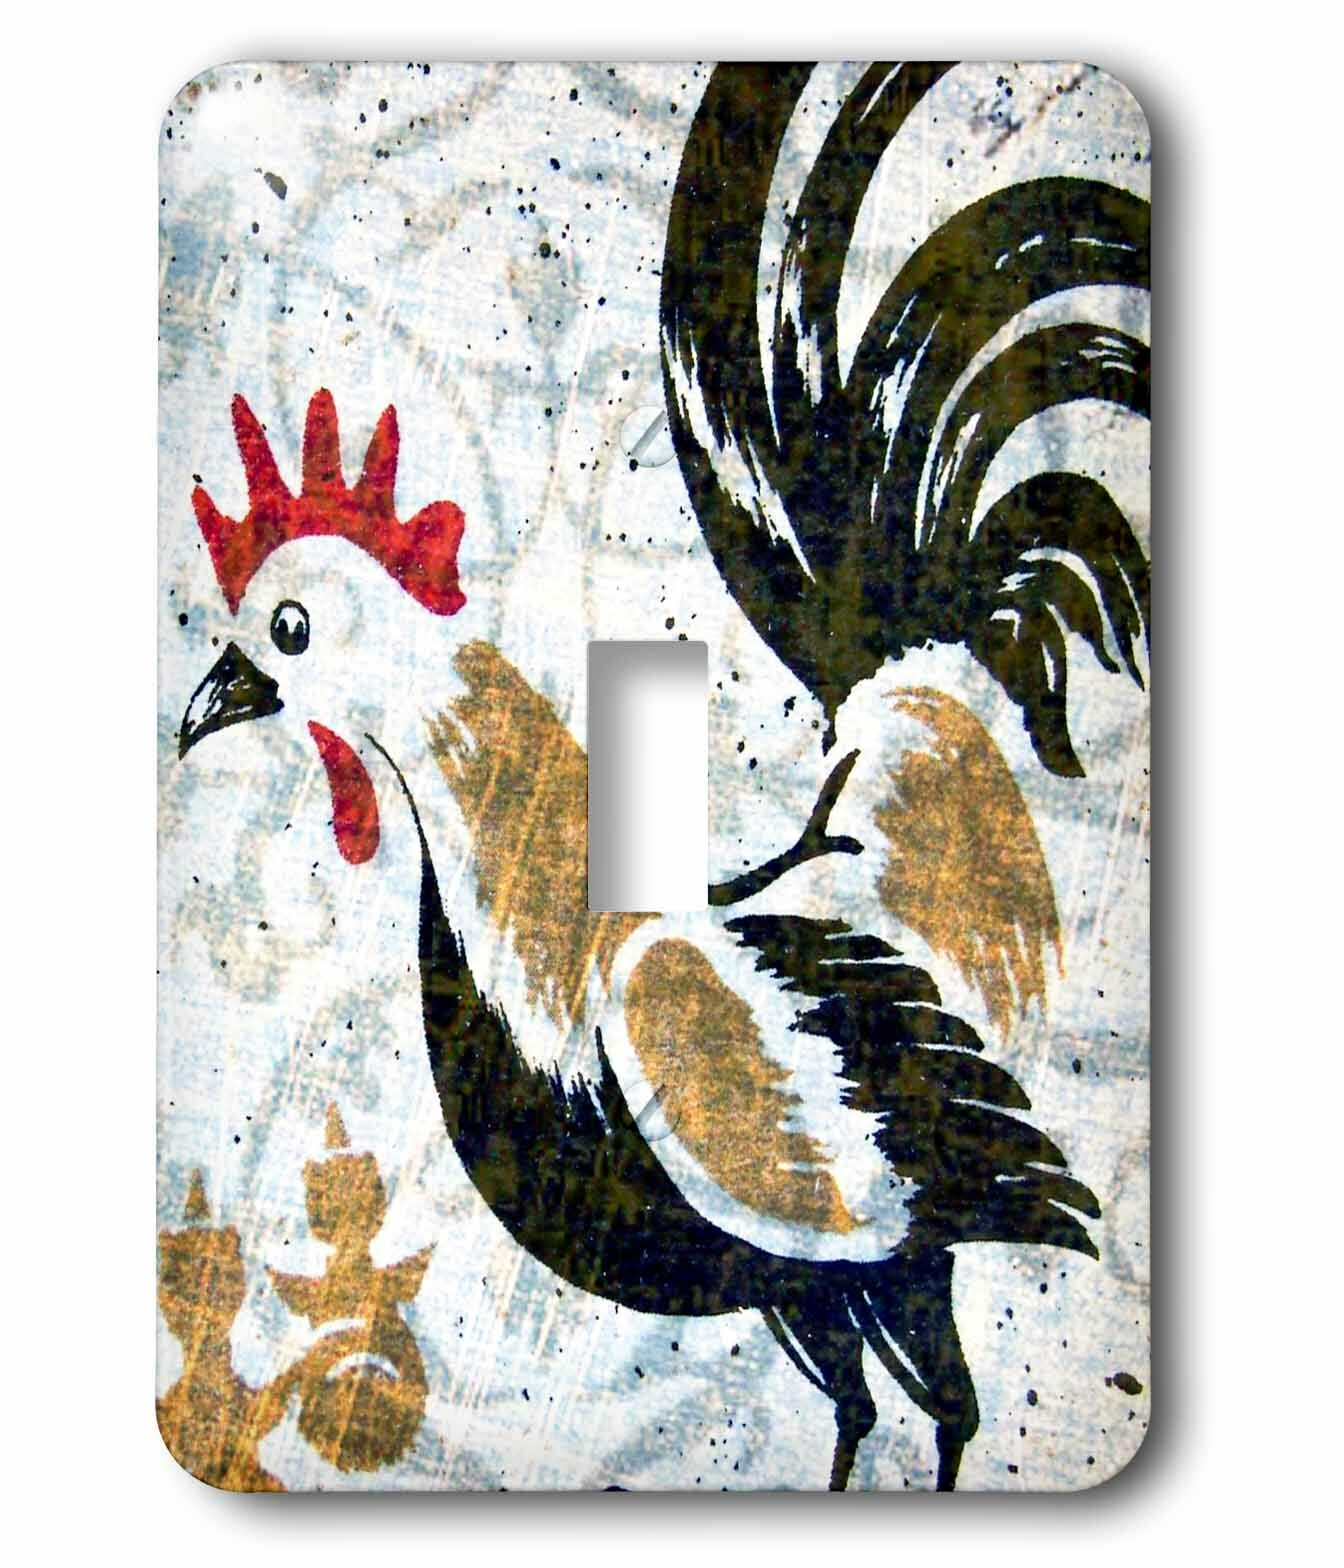 3drose Switch Vintage Rooster Digital Art By Angelandspot 1 Gang Toggle Light Switch Wall Plate Wayfair